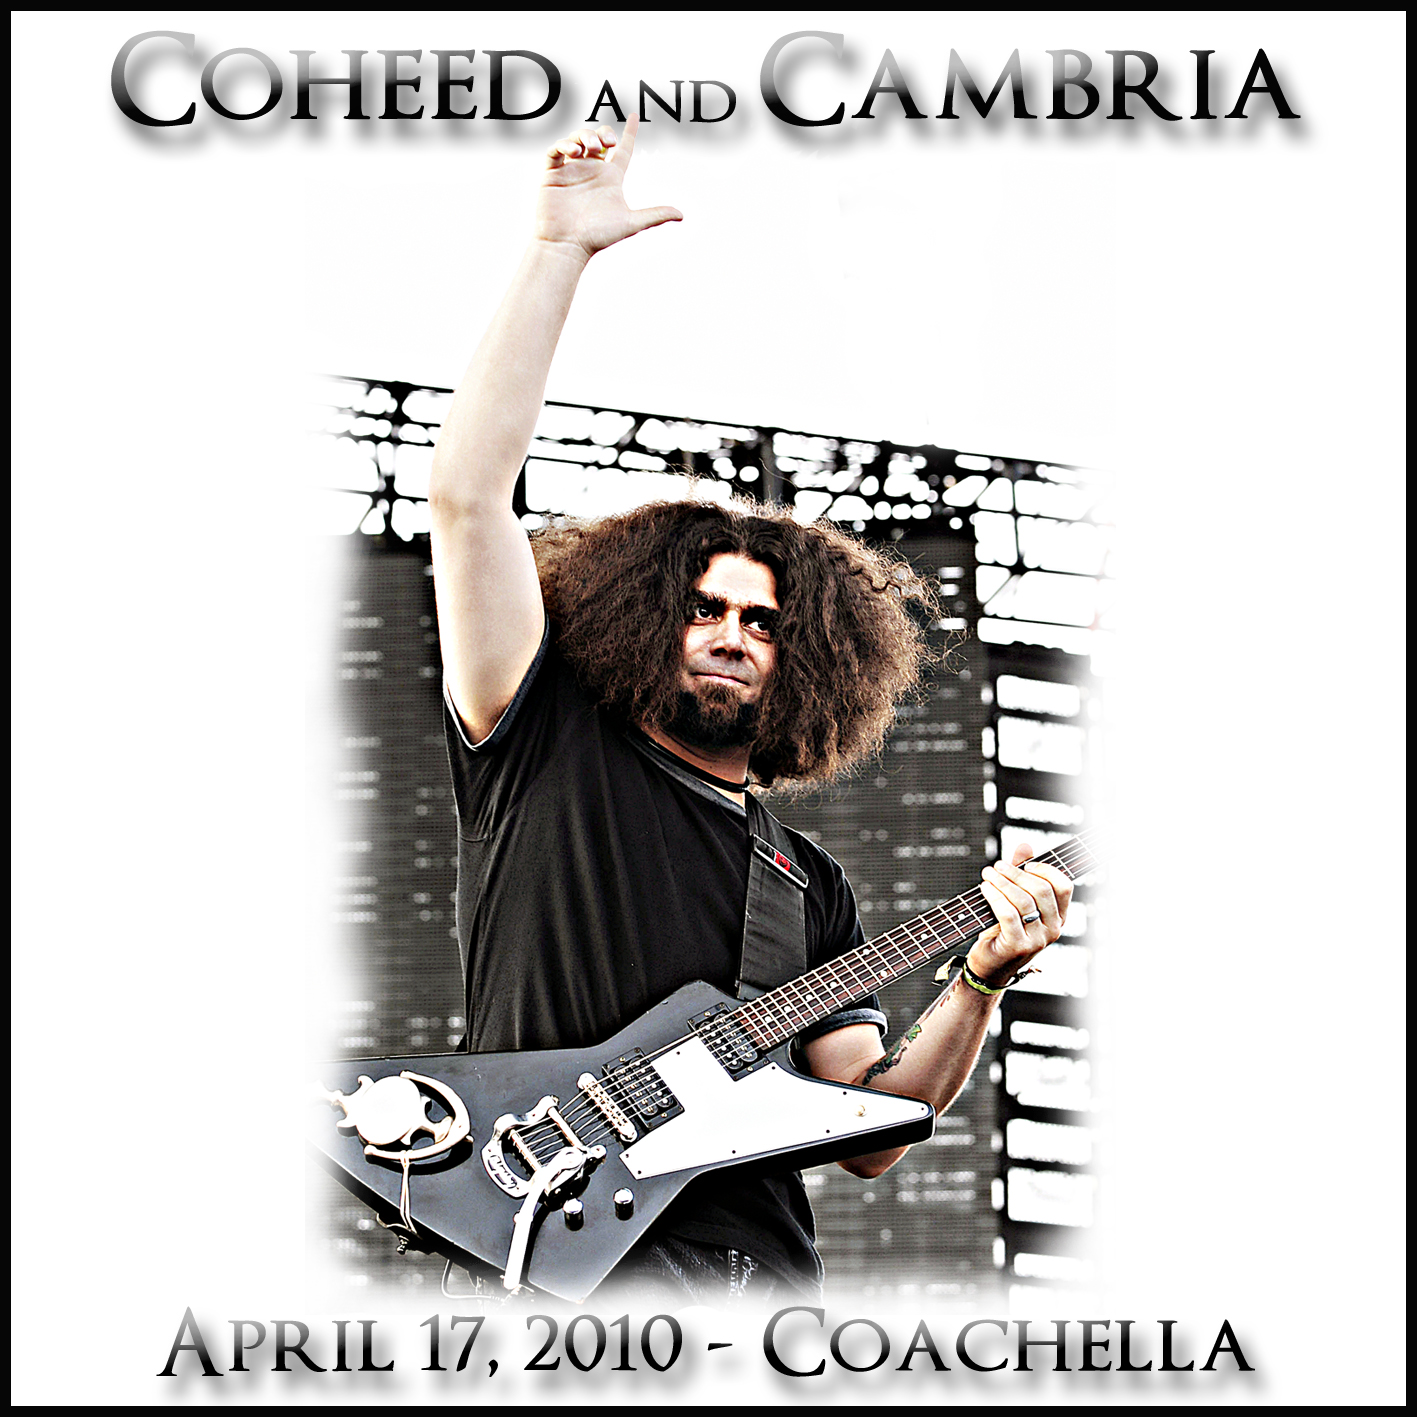 Coheed and cambria world of lines download firefox